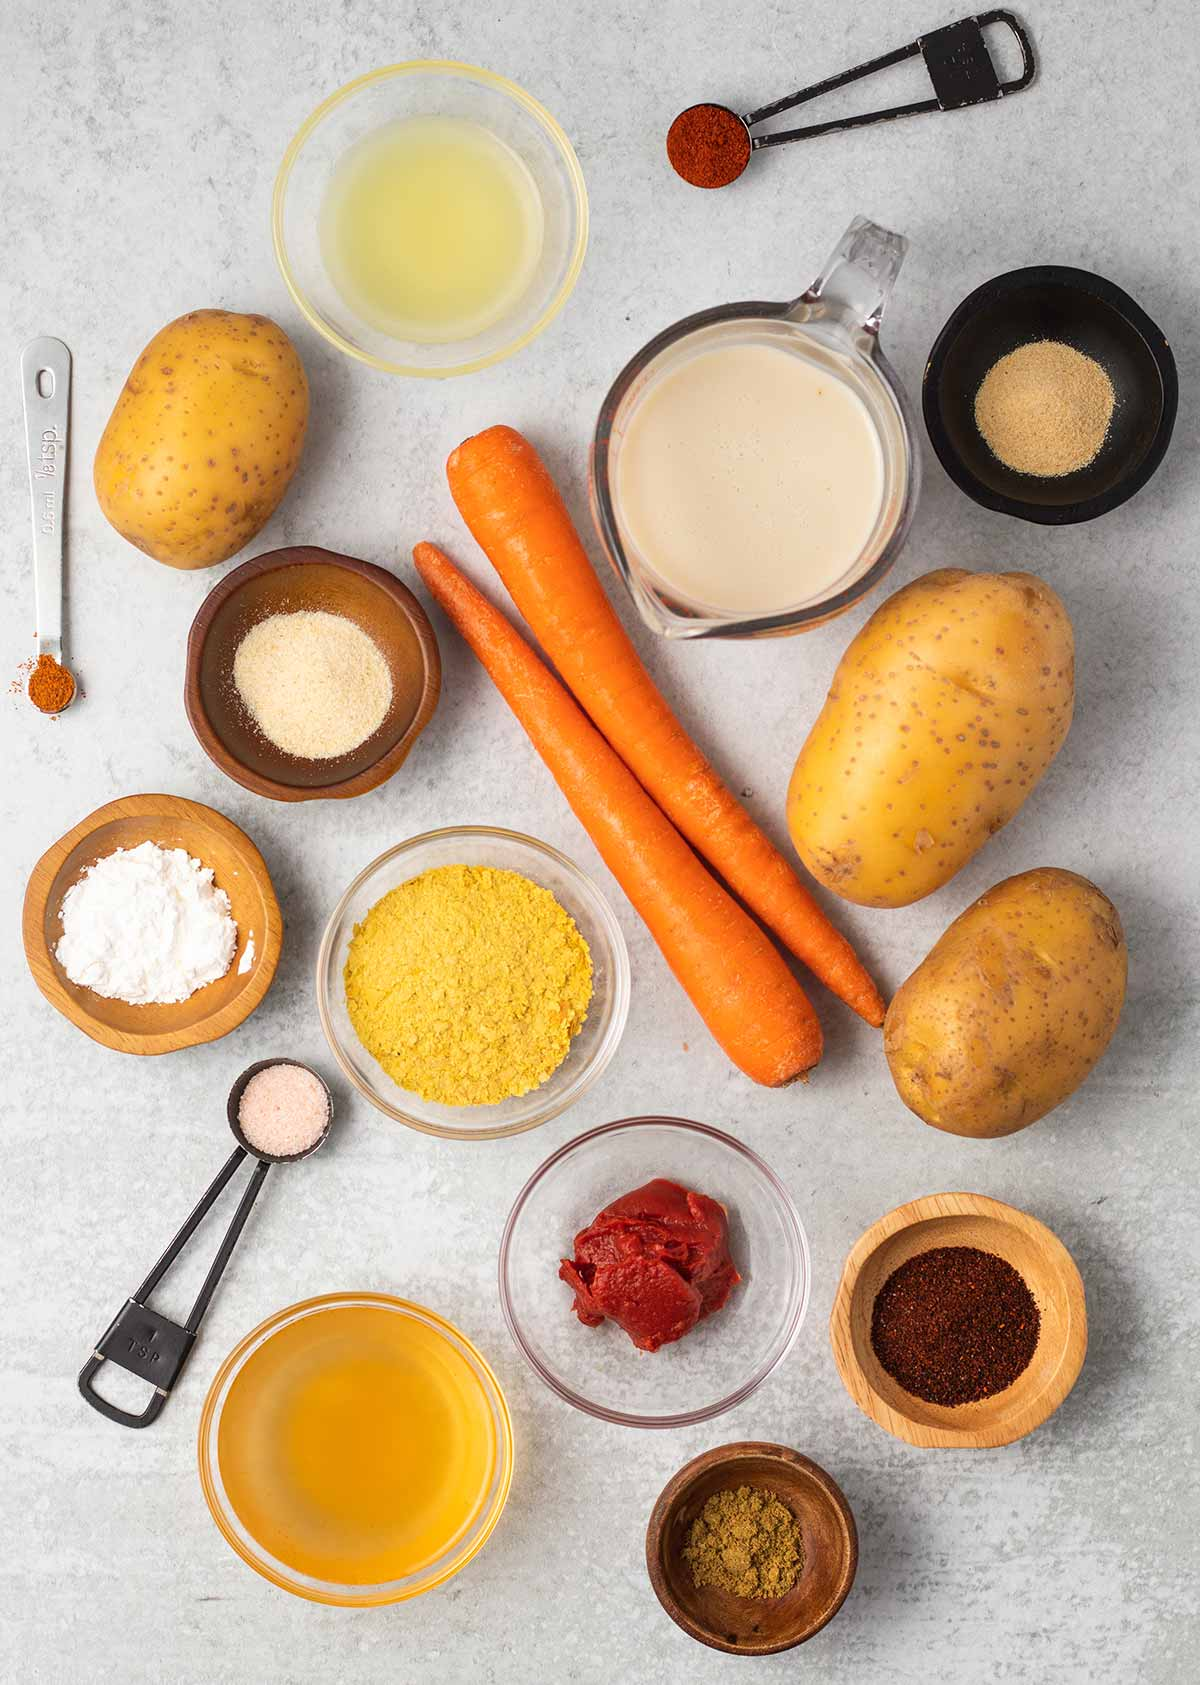 Ingredients for nacho cheese sauce, some are in small bowls and measuring spoons: potatoes, carrots, garlic powder, onion powder, lime juice, cayenne pepper, chili powder, cornstarch, nutritional yeast, salt, tomato paste, and cumin.